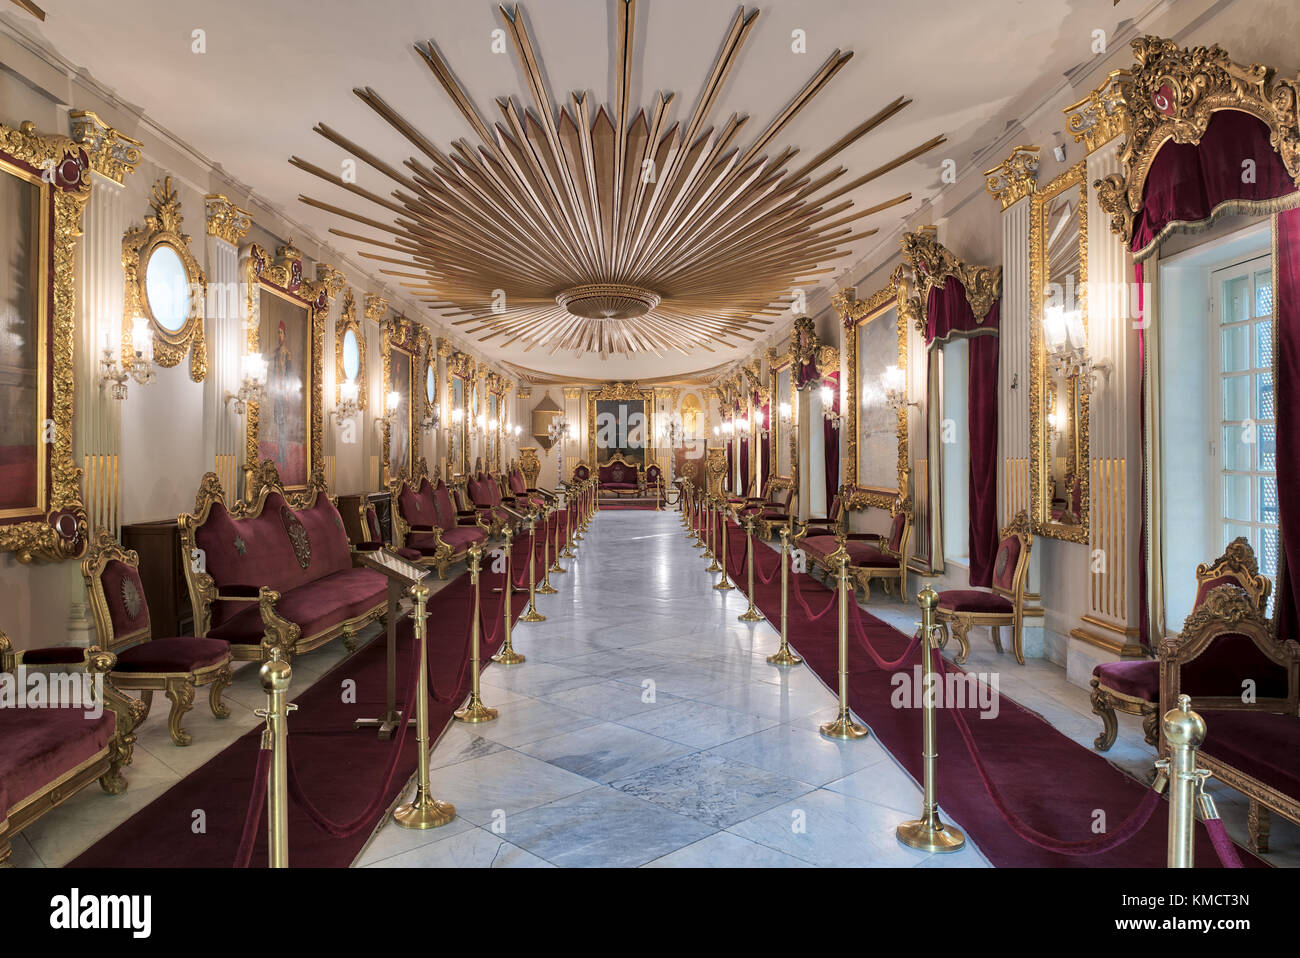 Throne Hall at Manial Palace of Prince Mohammed Ali Tewfik with gold plated red armchairs, antique floor lamps and - Stock Image